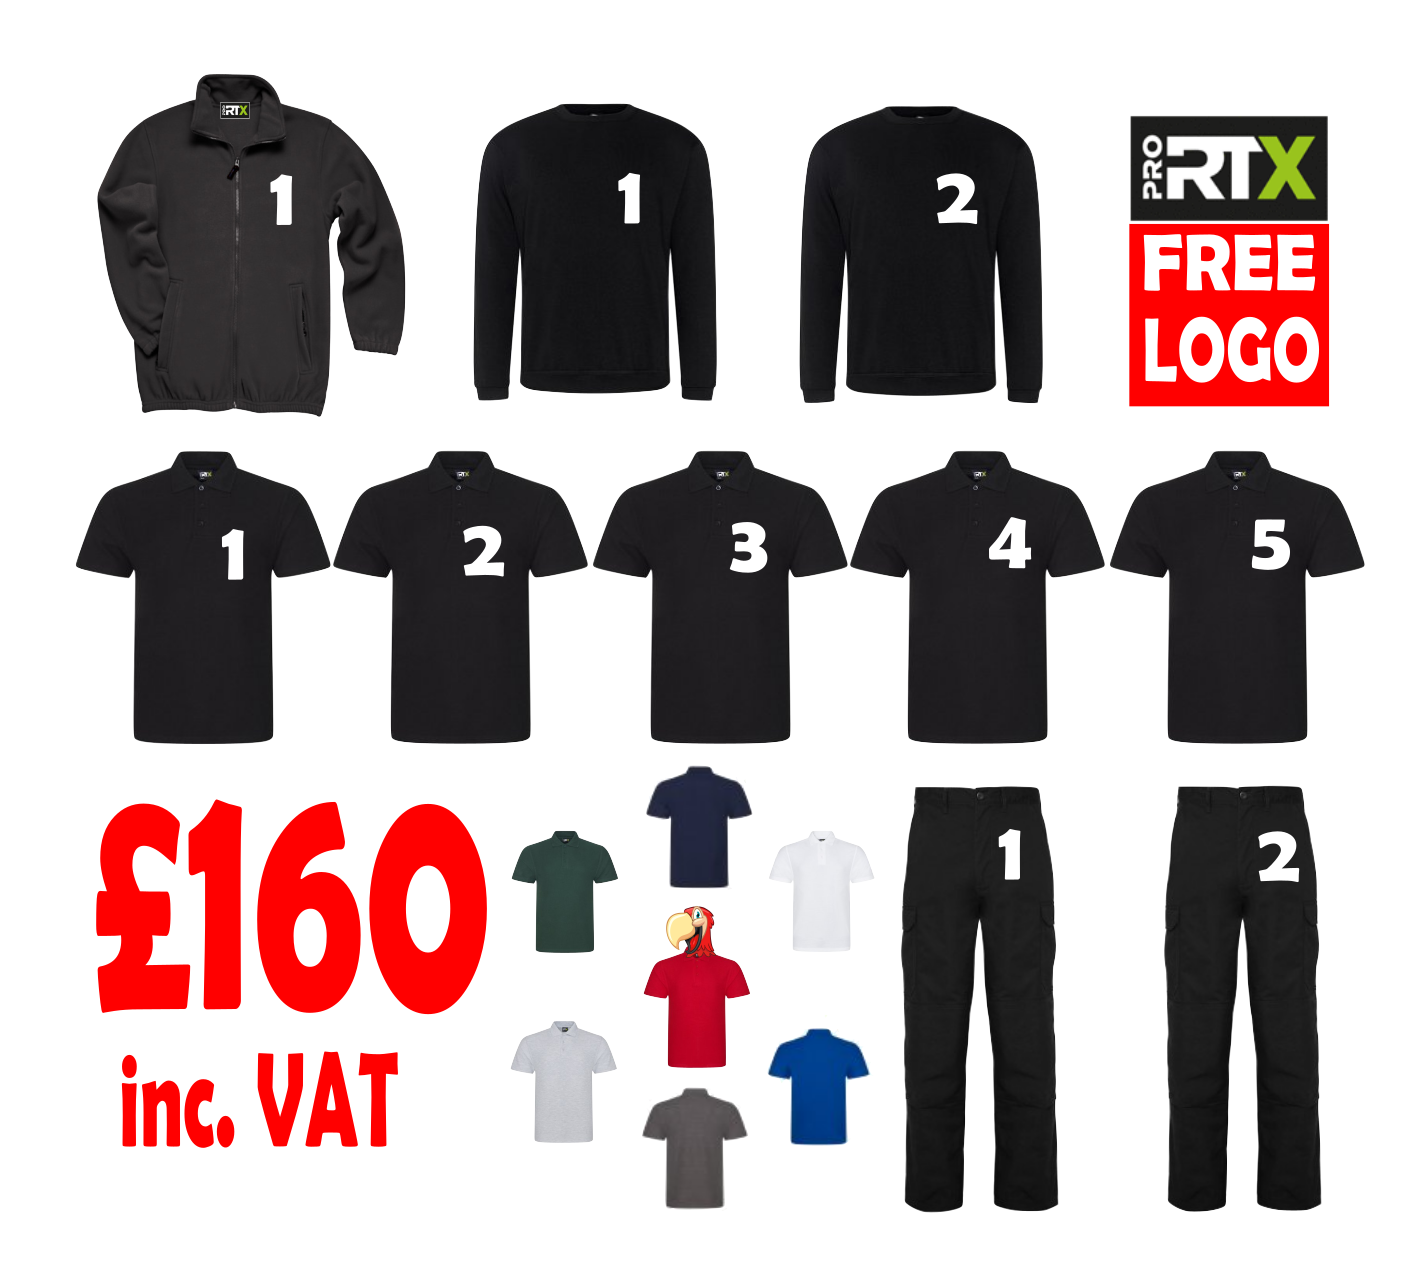 Personalized Bespoke Company Business Embroidered Workwear Uniform Pack